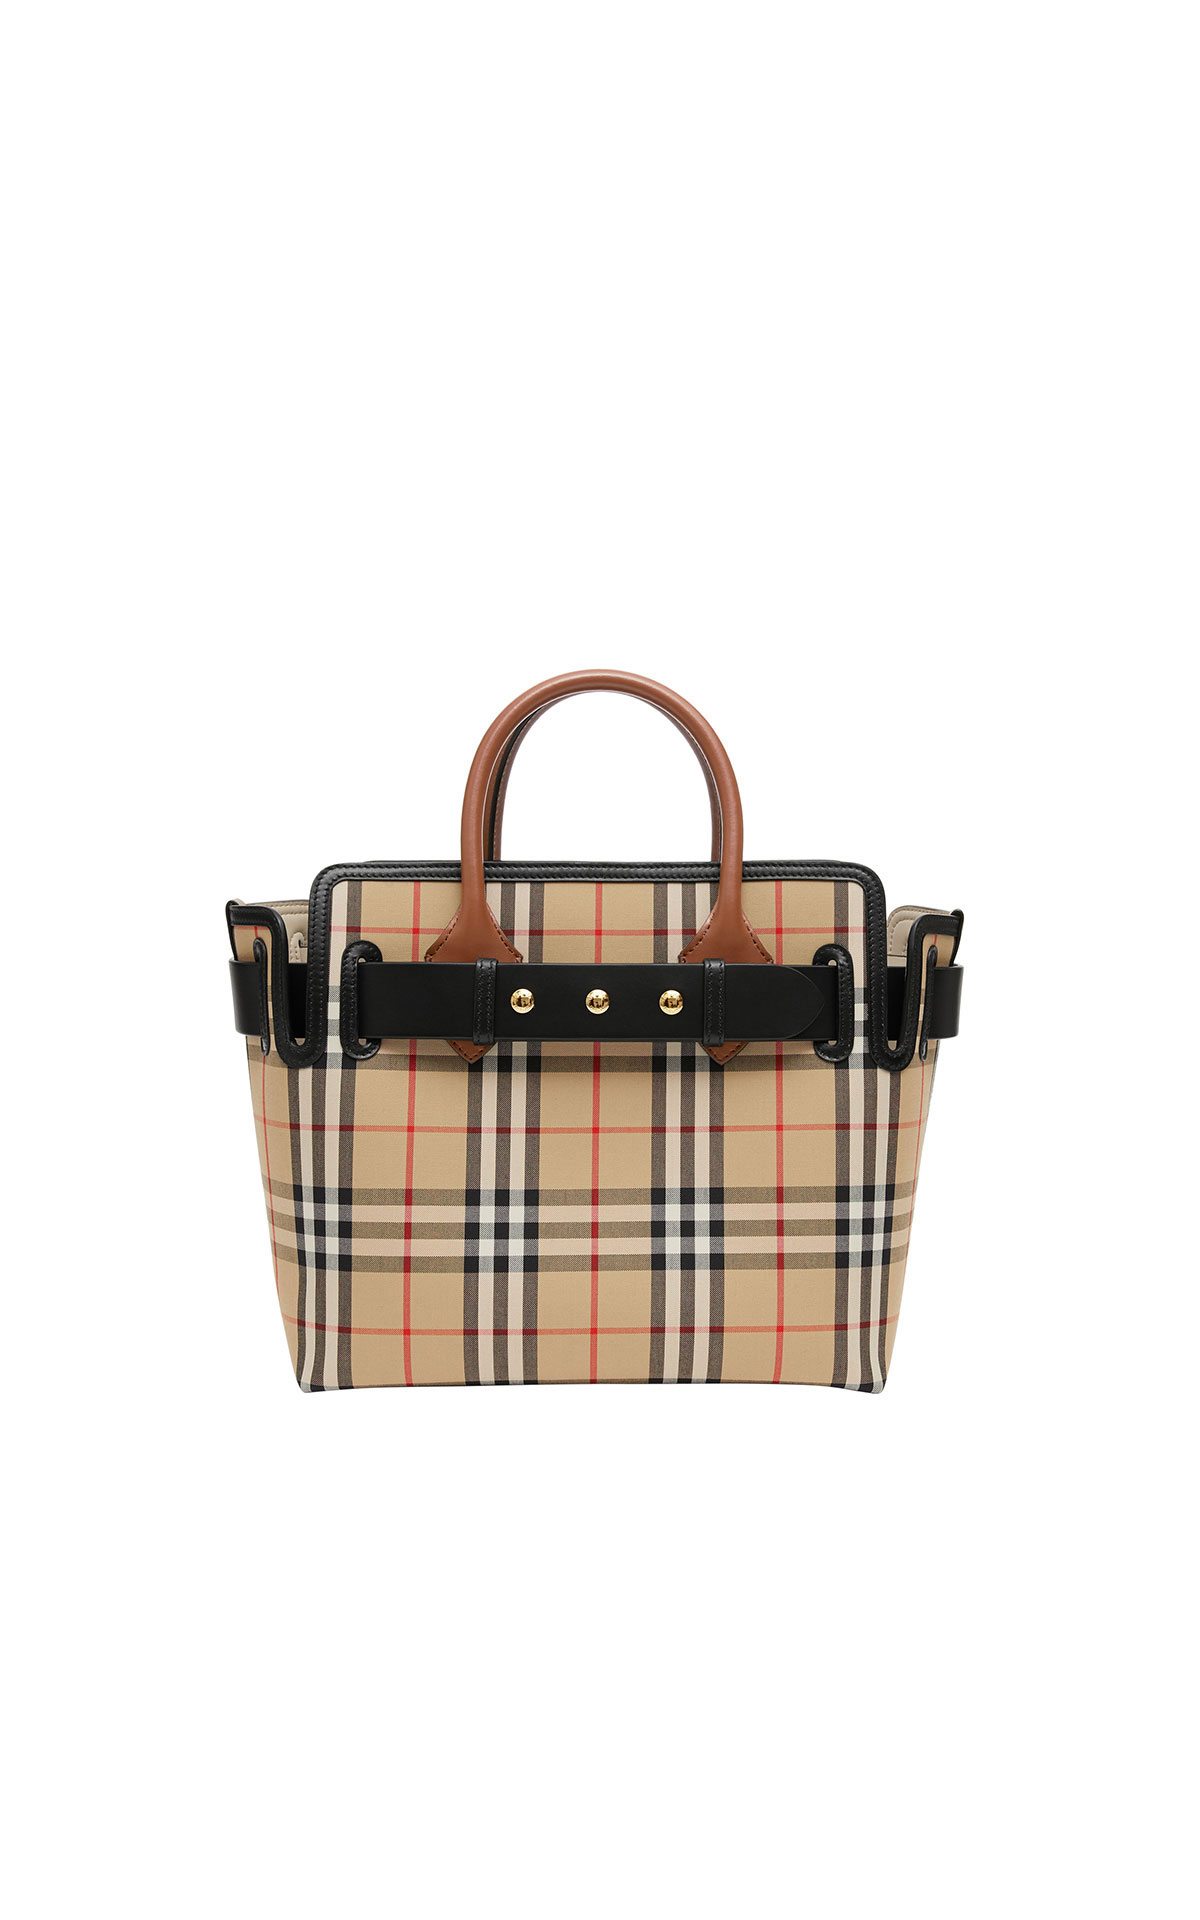 Burberry Women's SM belt bag from Bicester Village